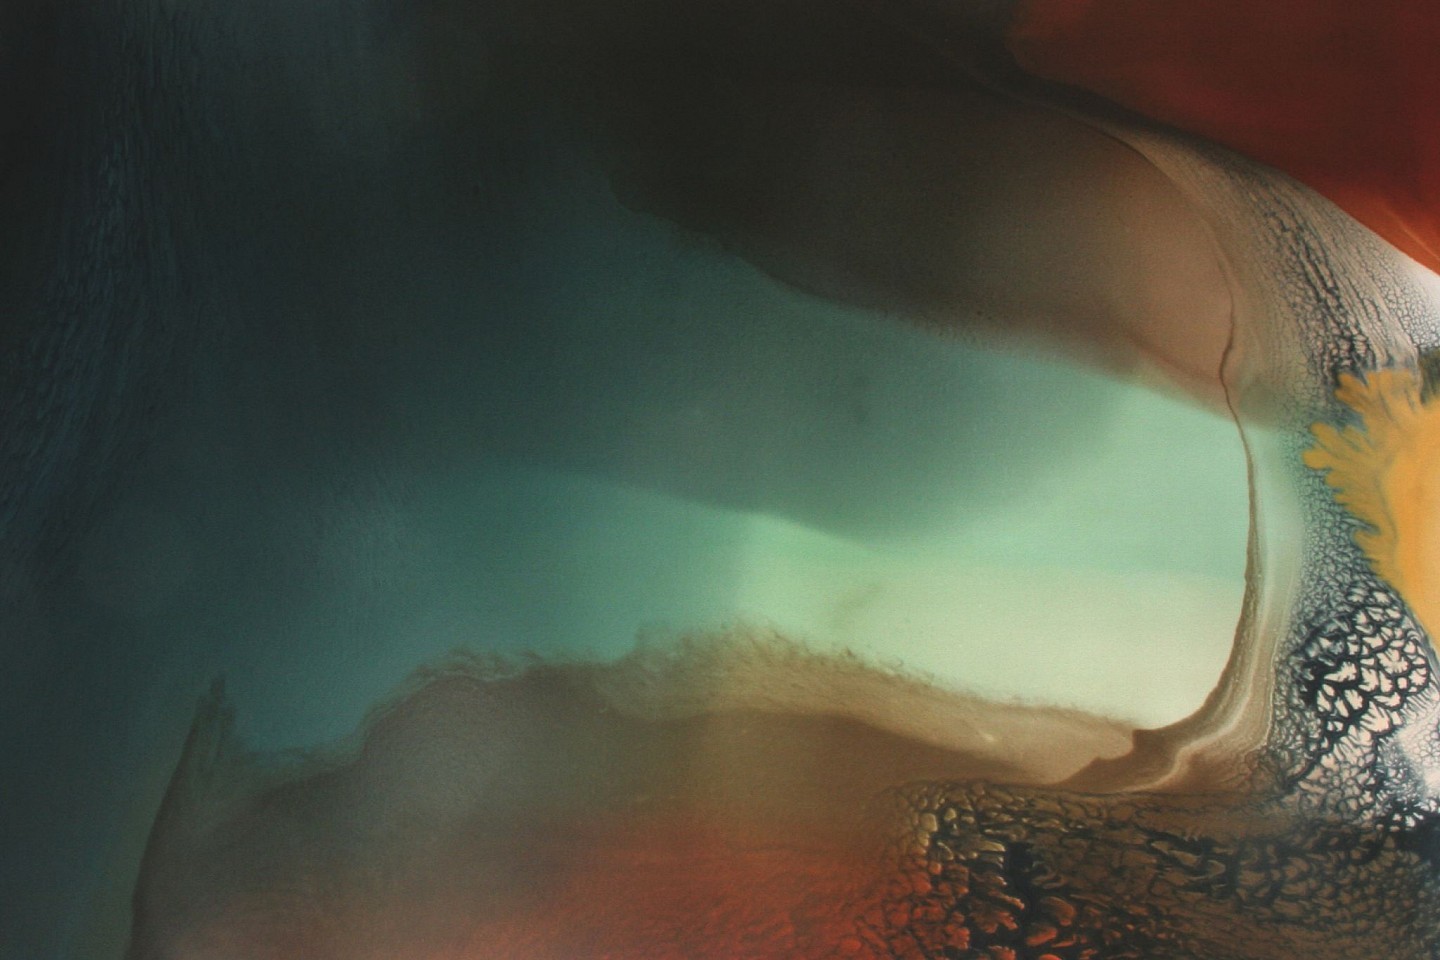 Jennifer Wolf, Landscape #1 2013, minerals and dyes on canvas over panel